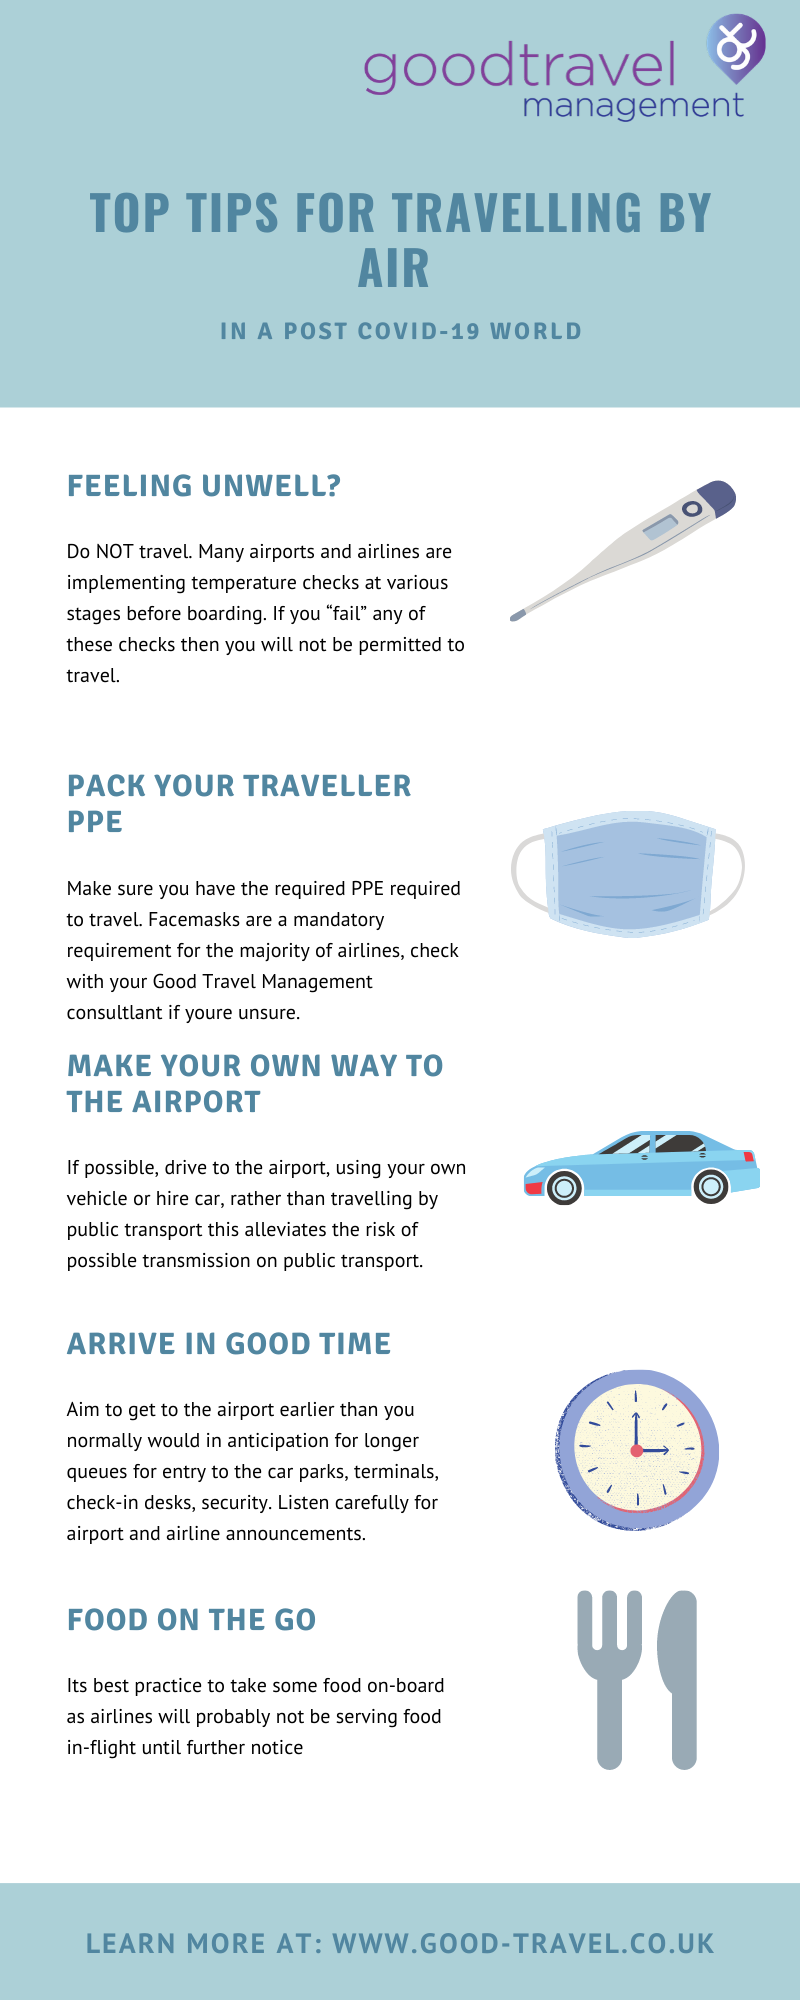 INFO Top Tips for travelling by Air in a post Covid-19 world